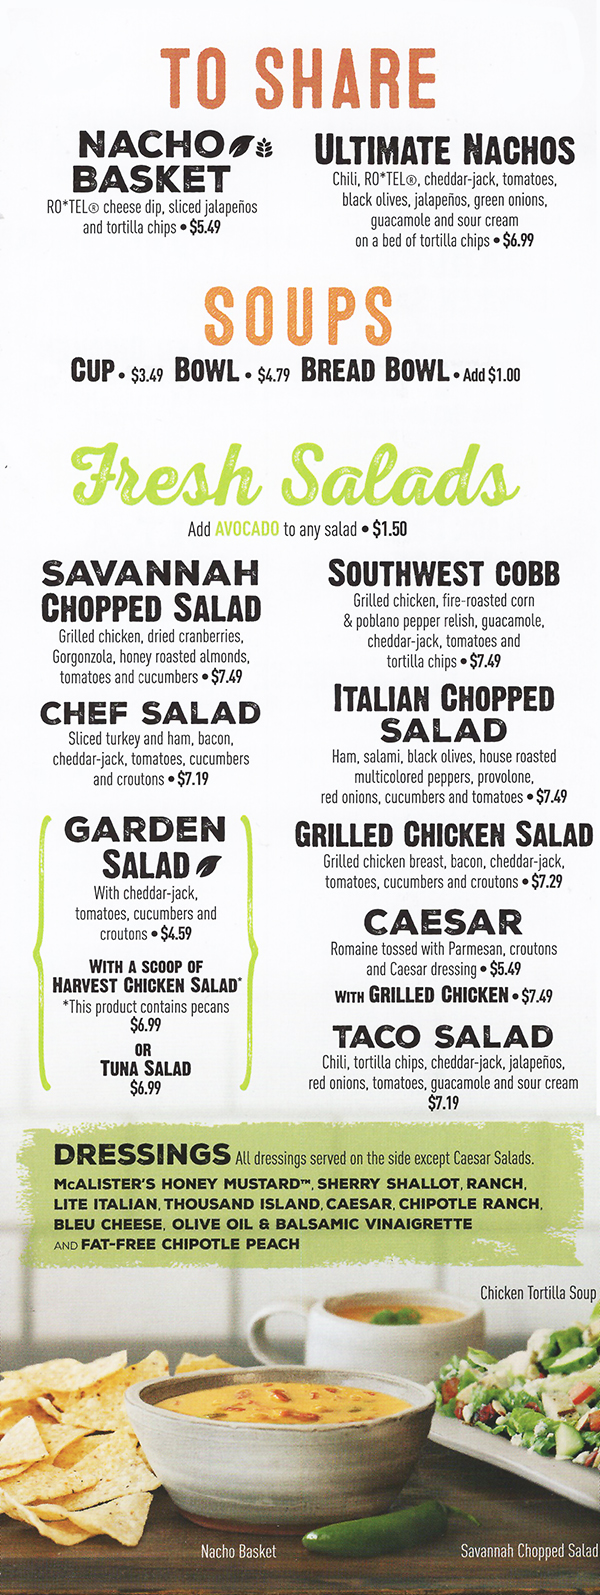 Crush image in mcalisters deli printable menu